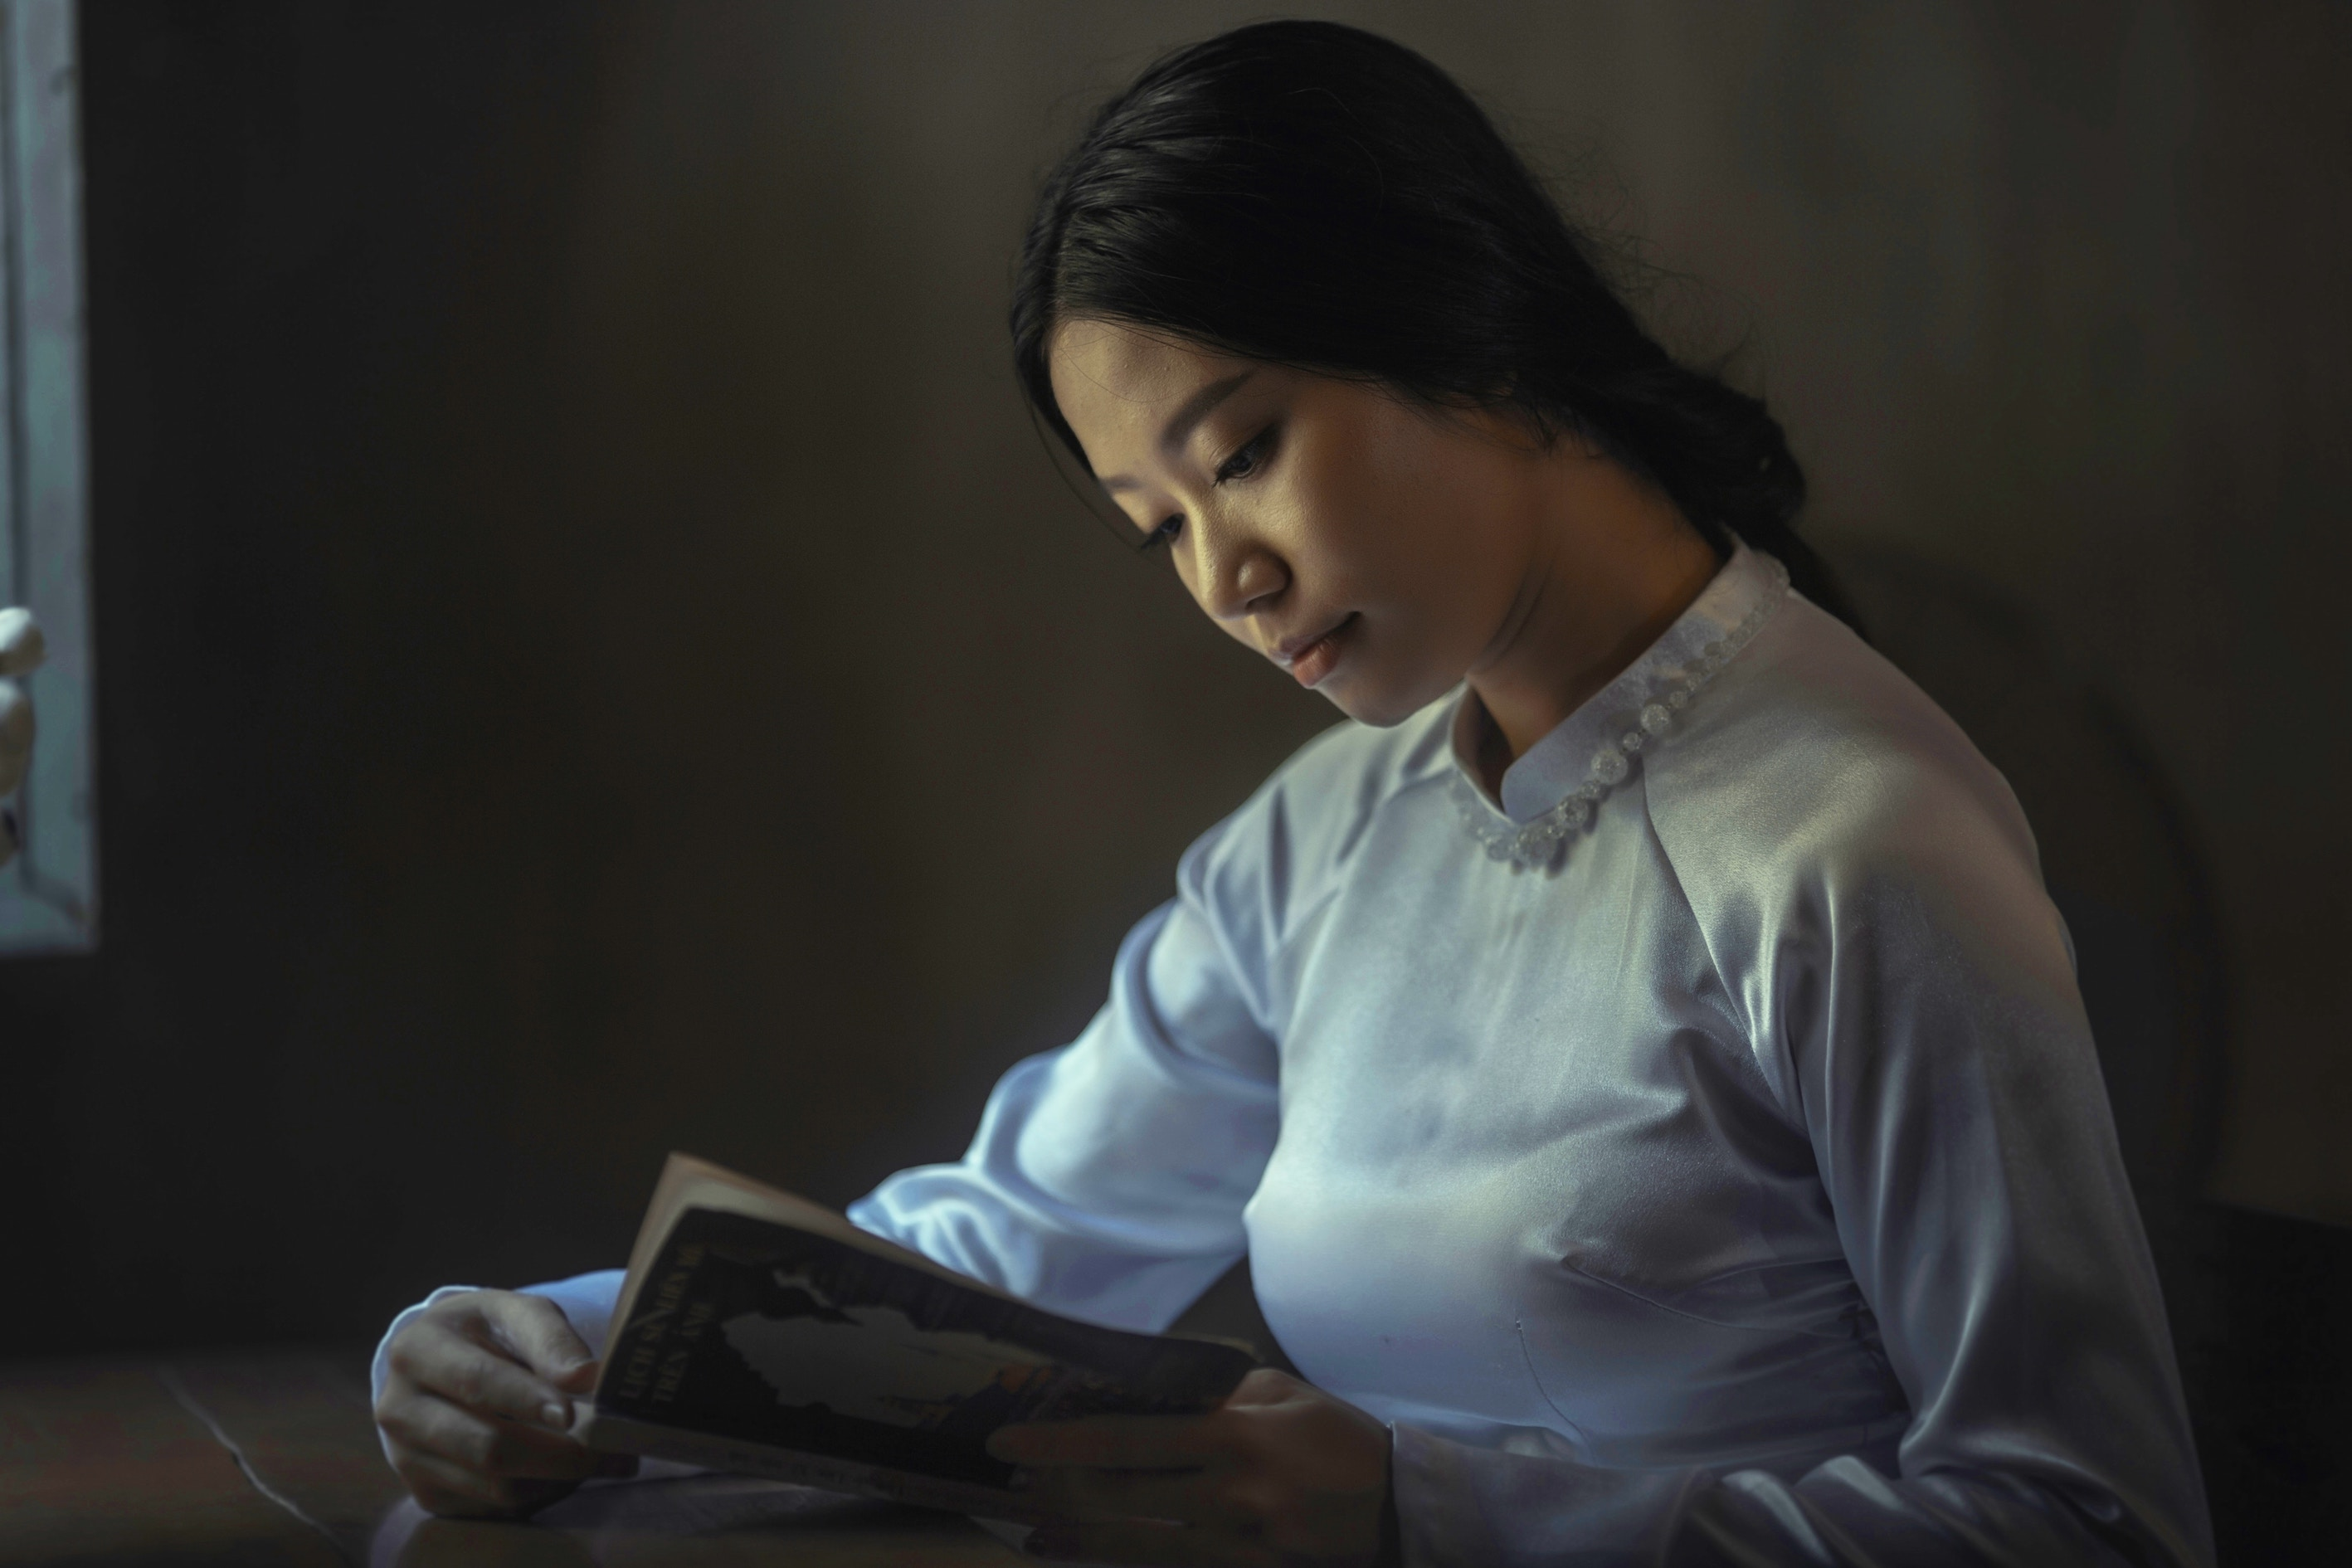 woman reading hisu lee